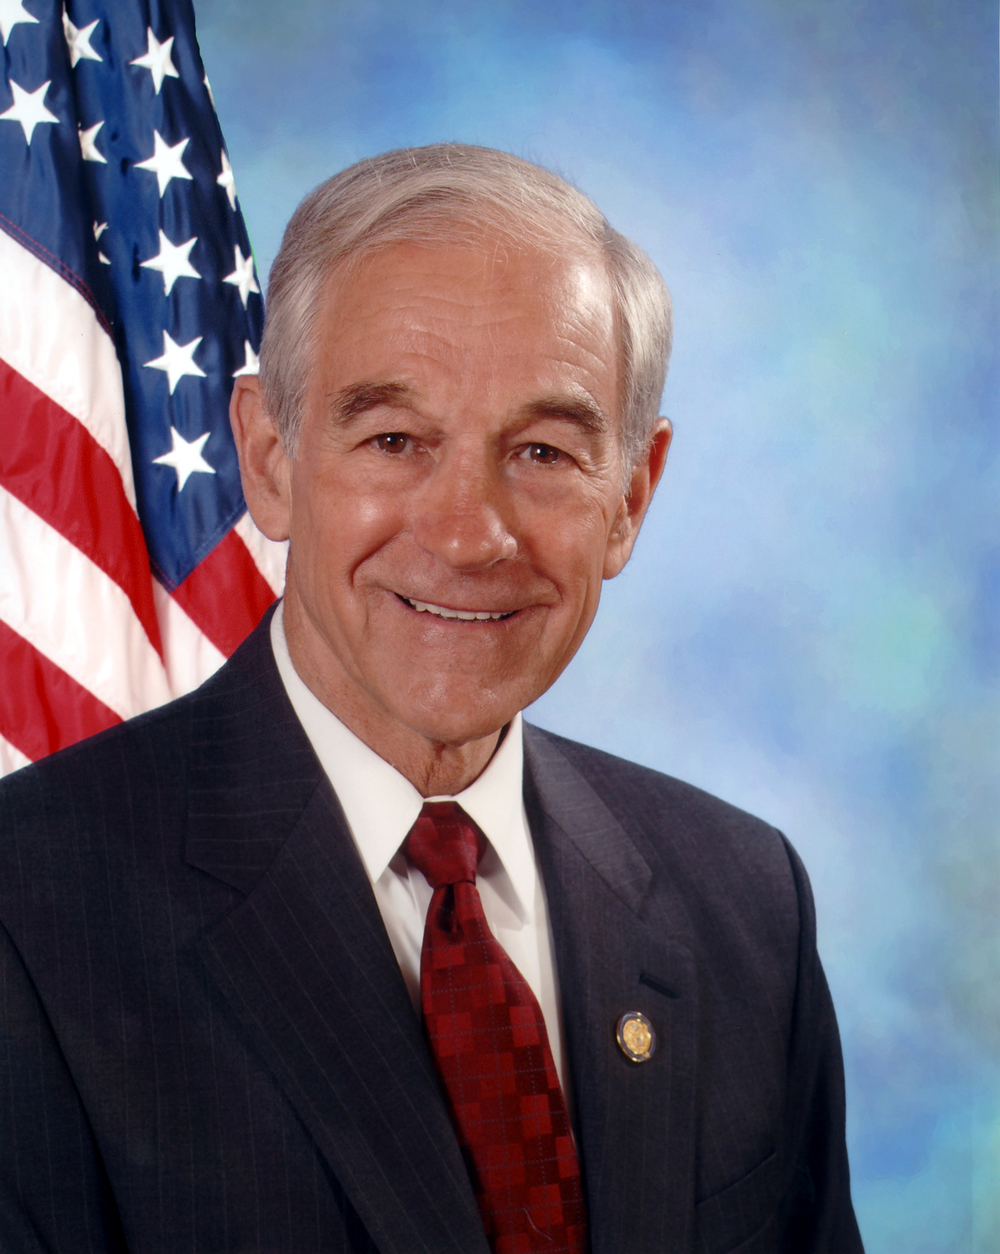 Former Texas congressman Ron Paul. Credit: United States Congress.